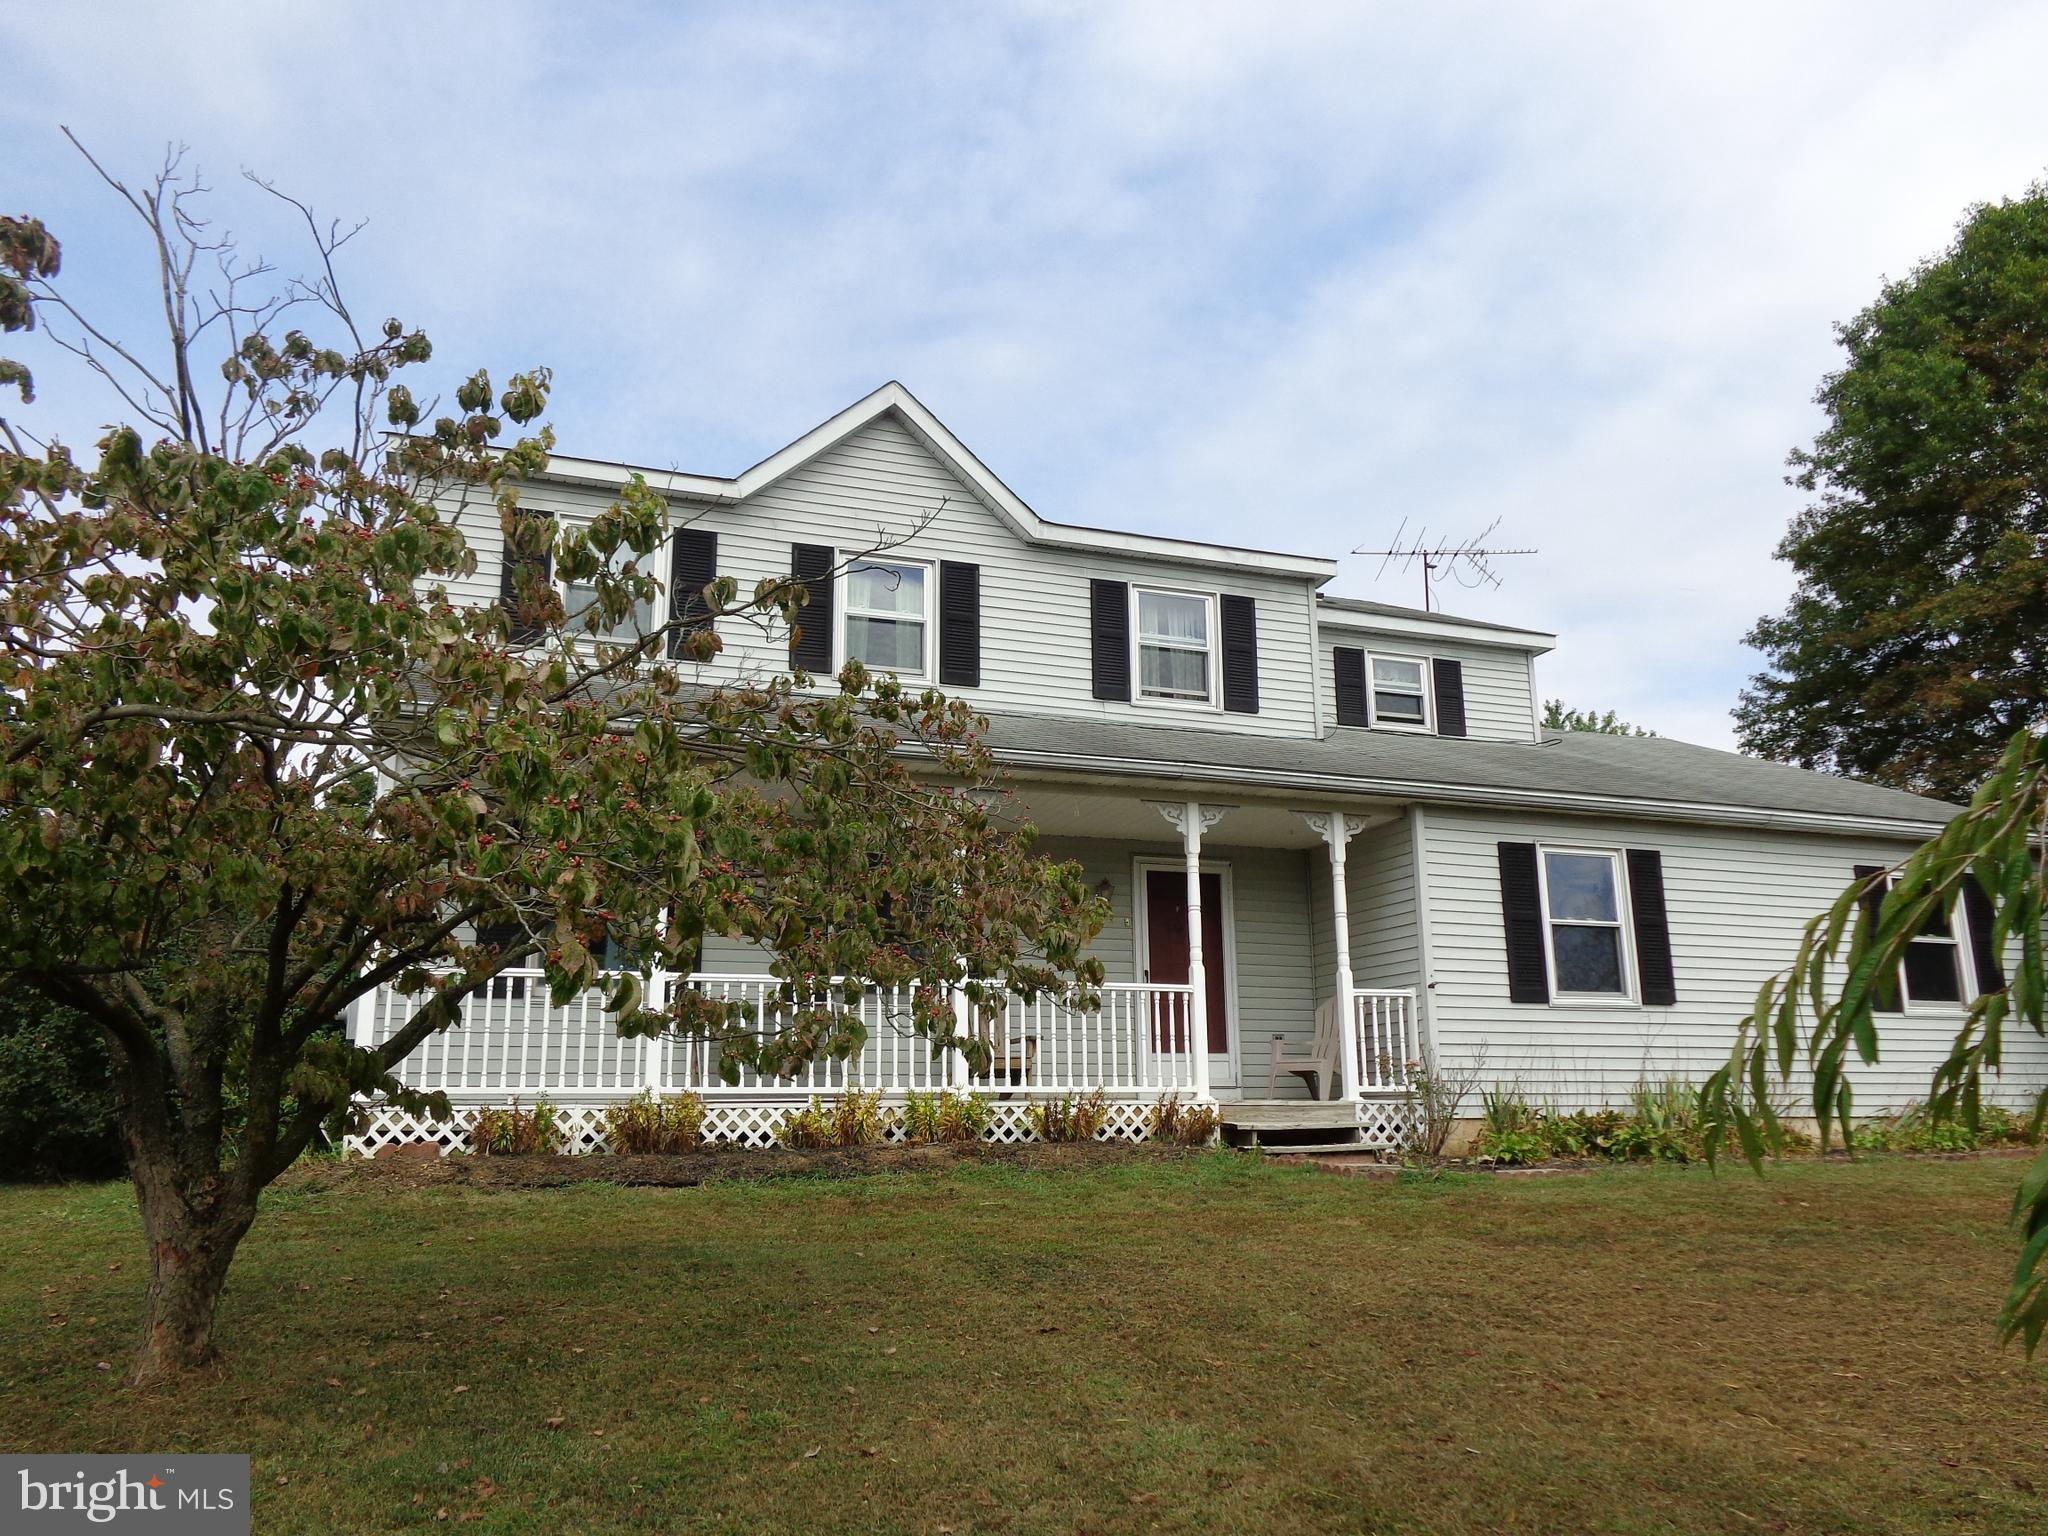 69 LOWER VALLEY ROAD, CHRISTIANA, PA 17509